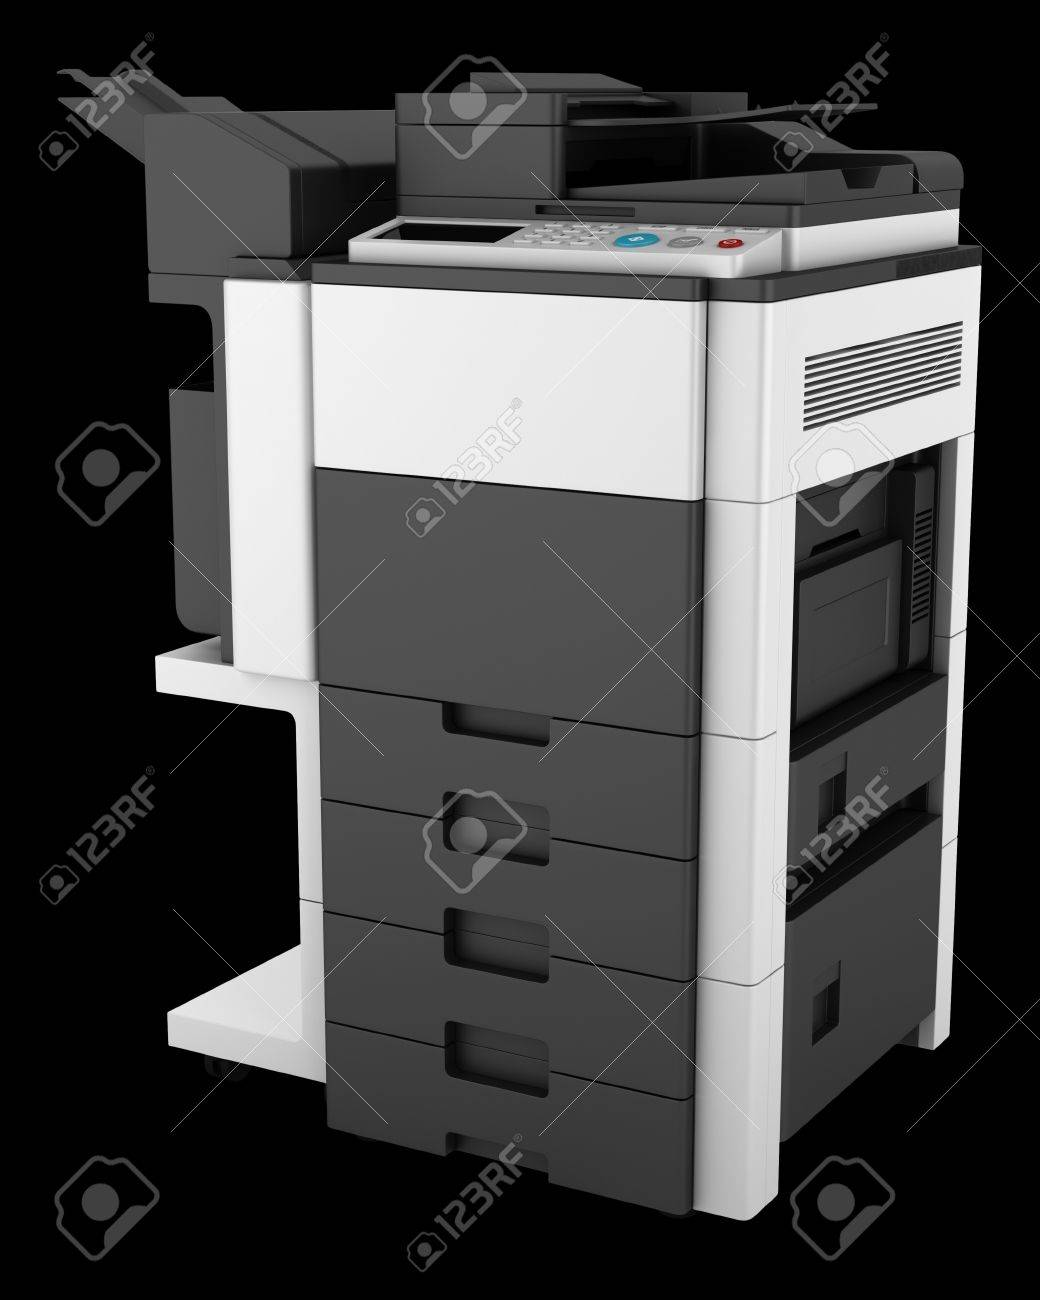 modern office multifunction printer isolated on black background Stock Photo - 20840249